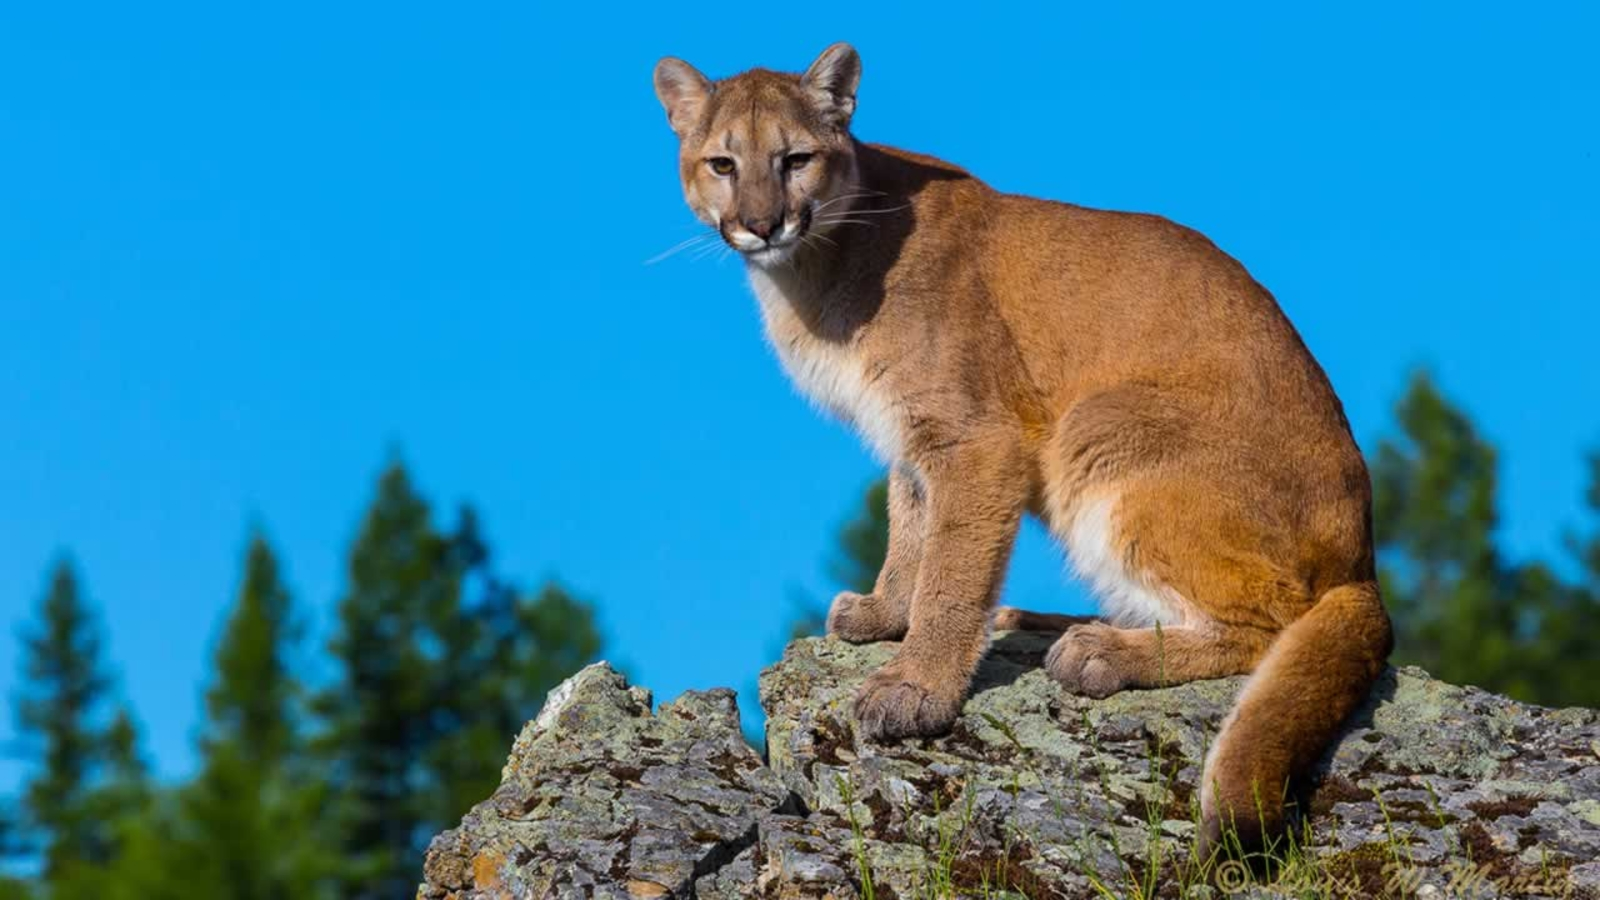 VIDEO: What to do if you come face-to-face with a mountain lion